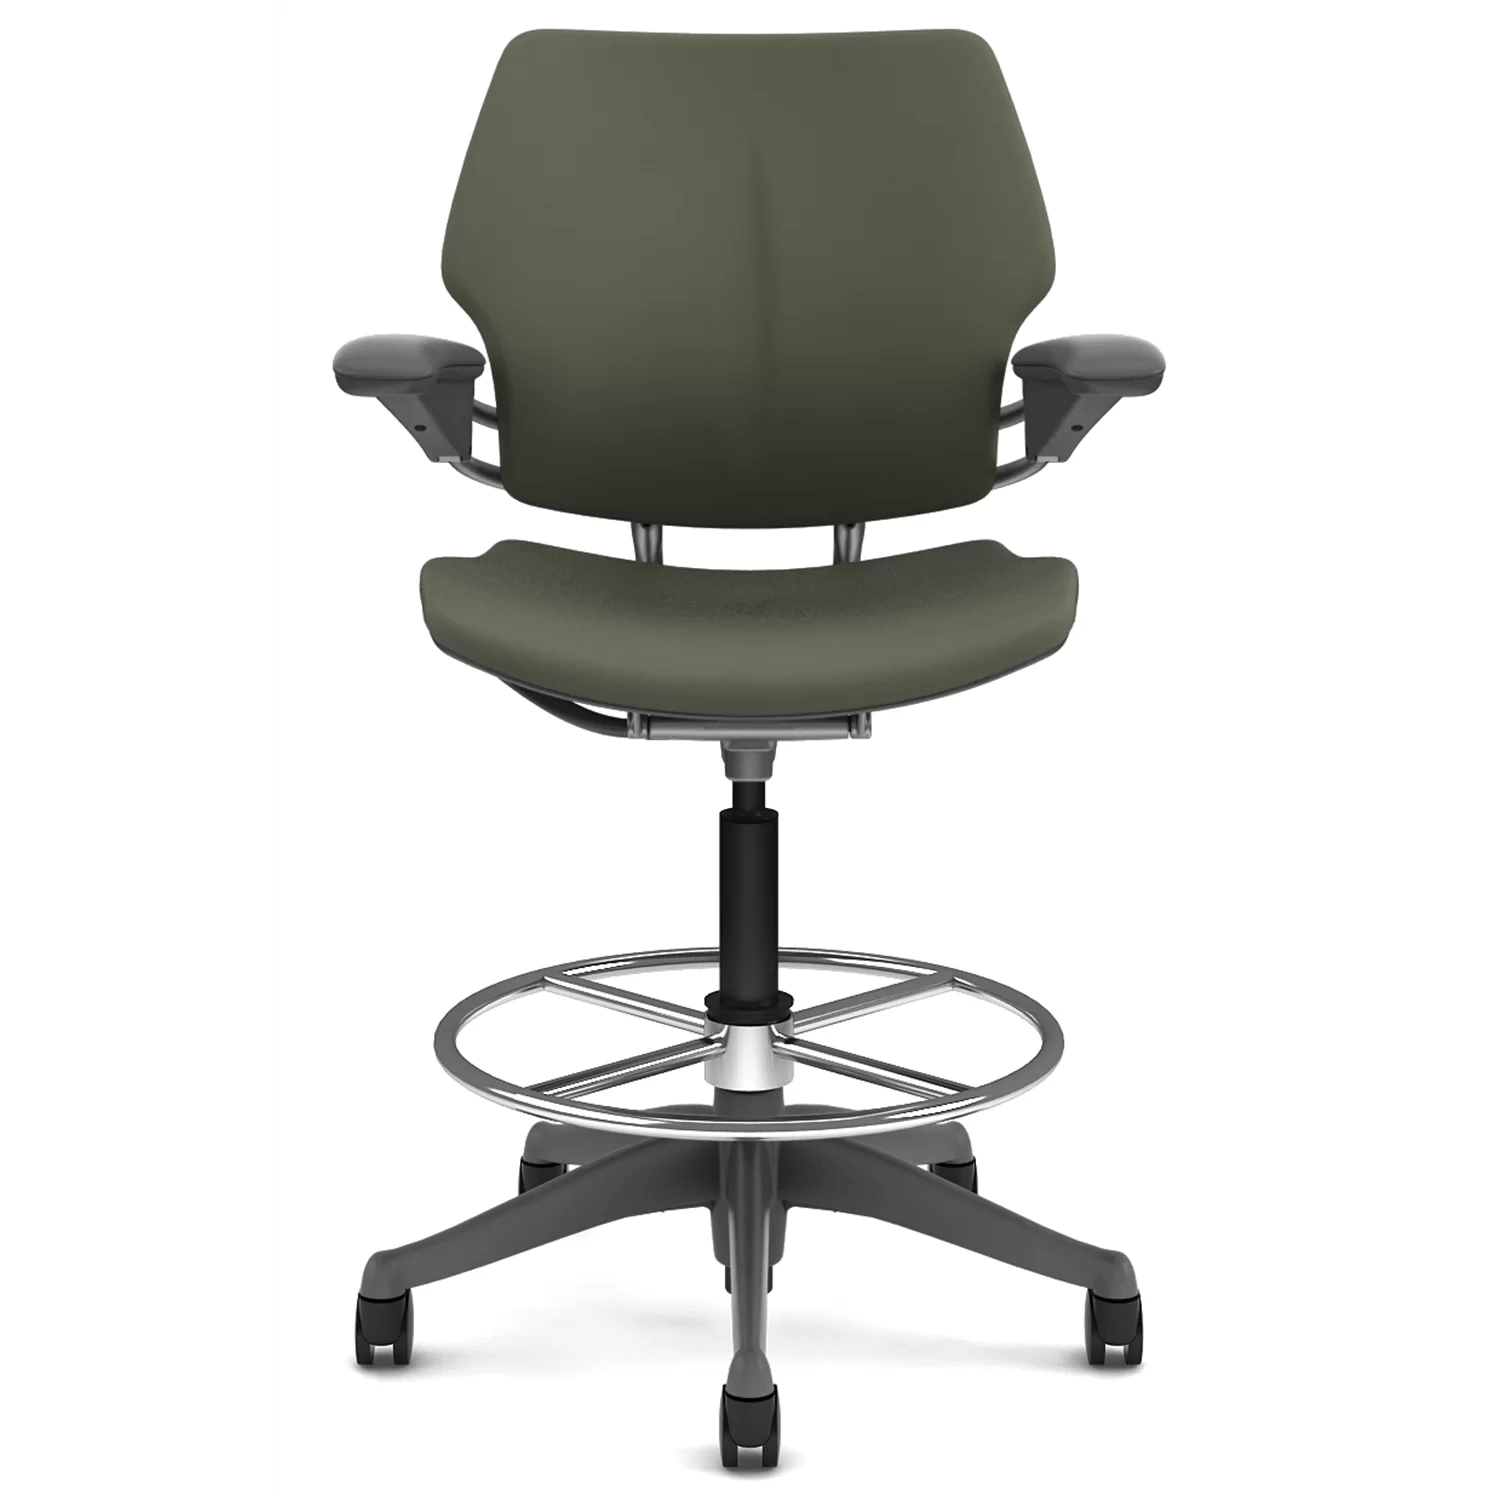 Adjustable Drafting Chair Humanscale Freedom Height Adjustable Drafting Chair With